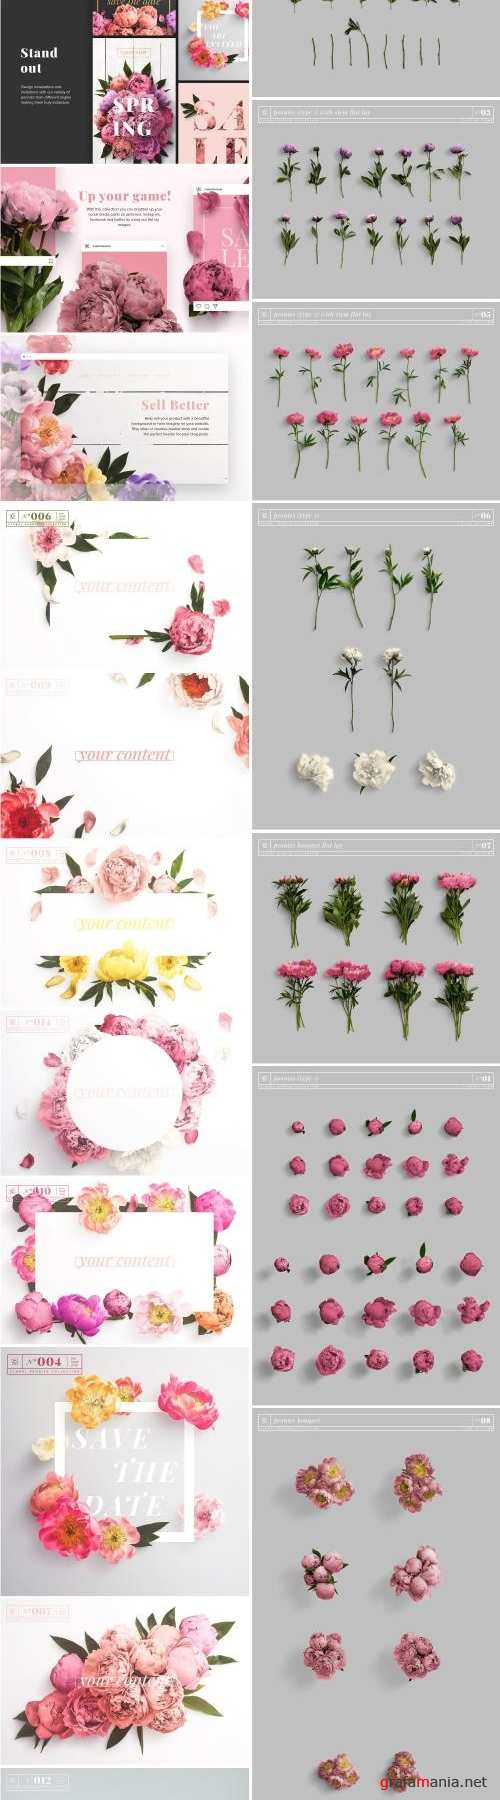 Floral Peonies Collection - 2303528